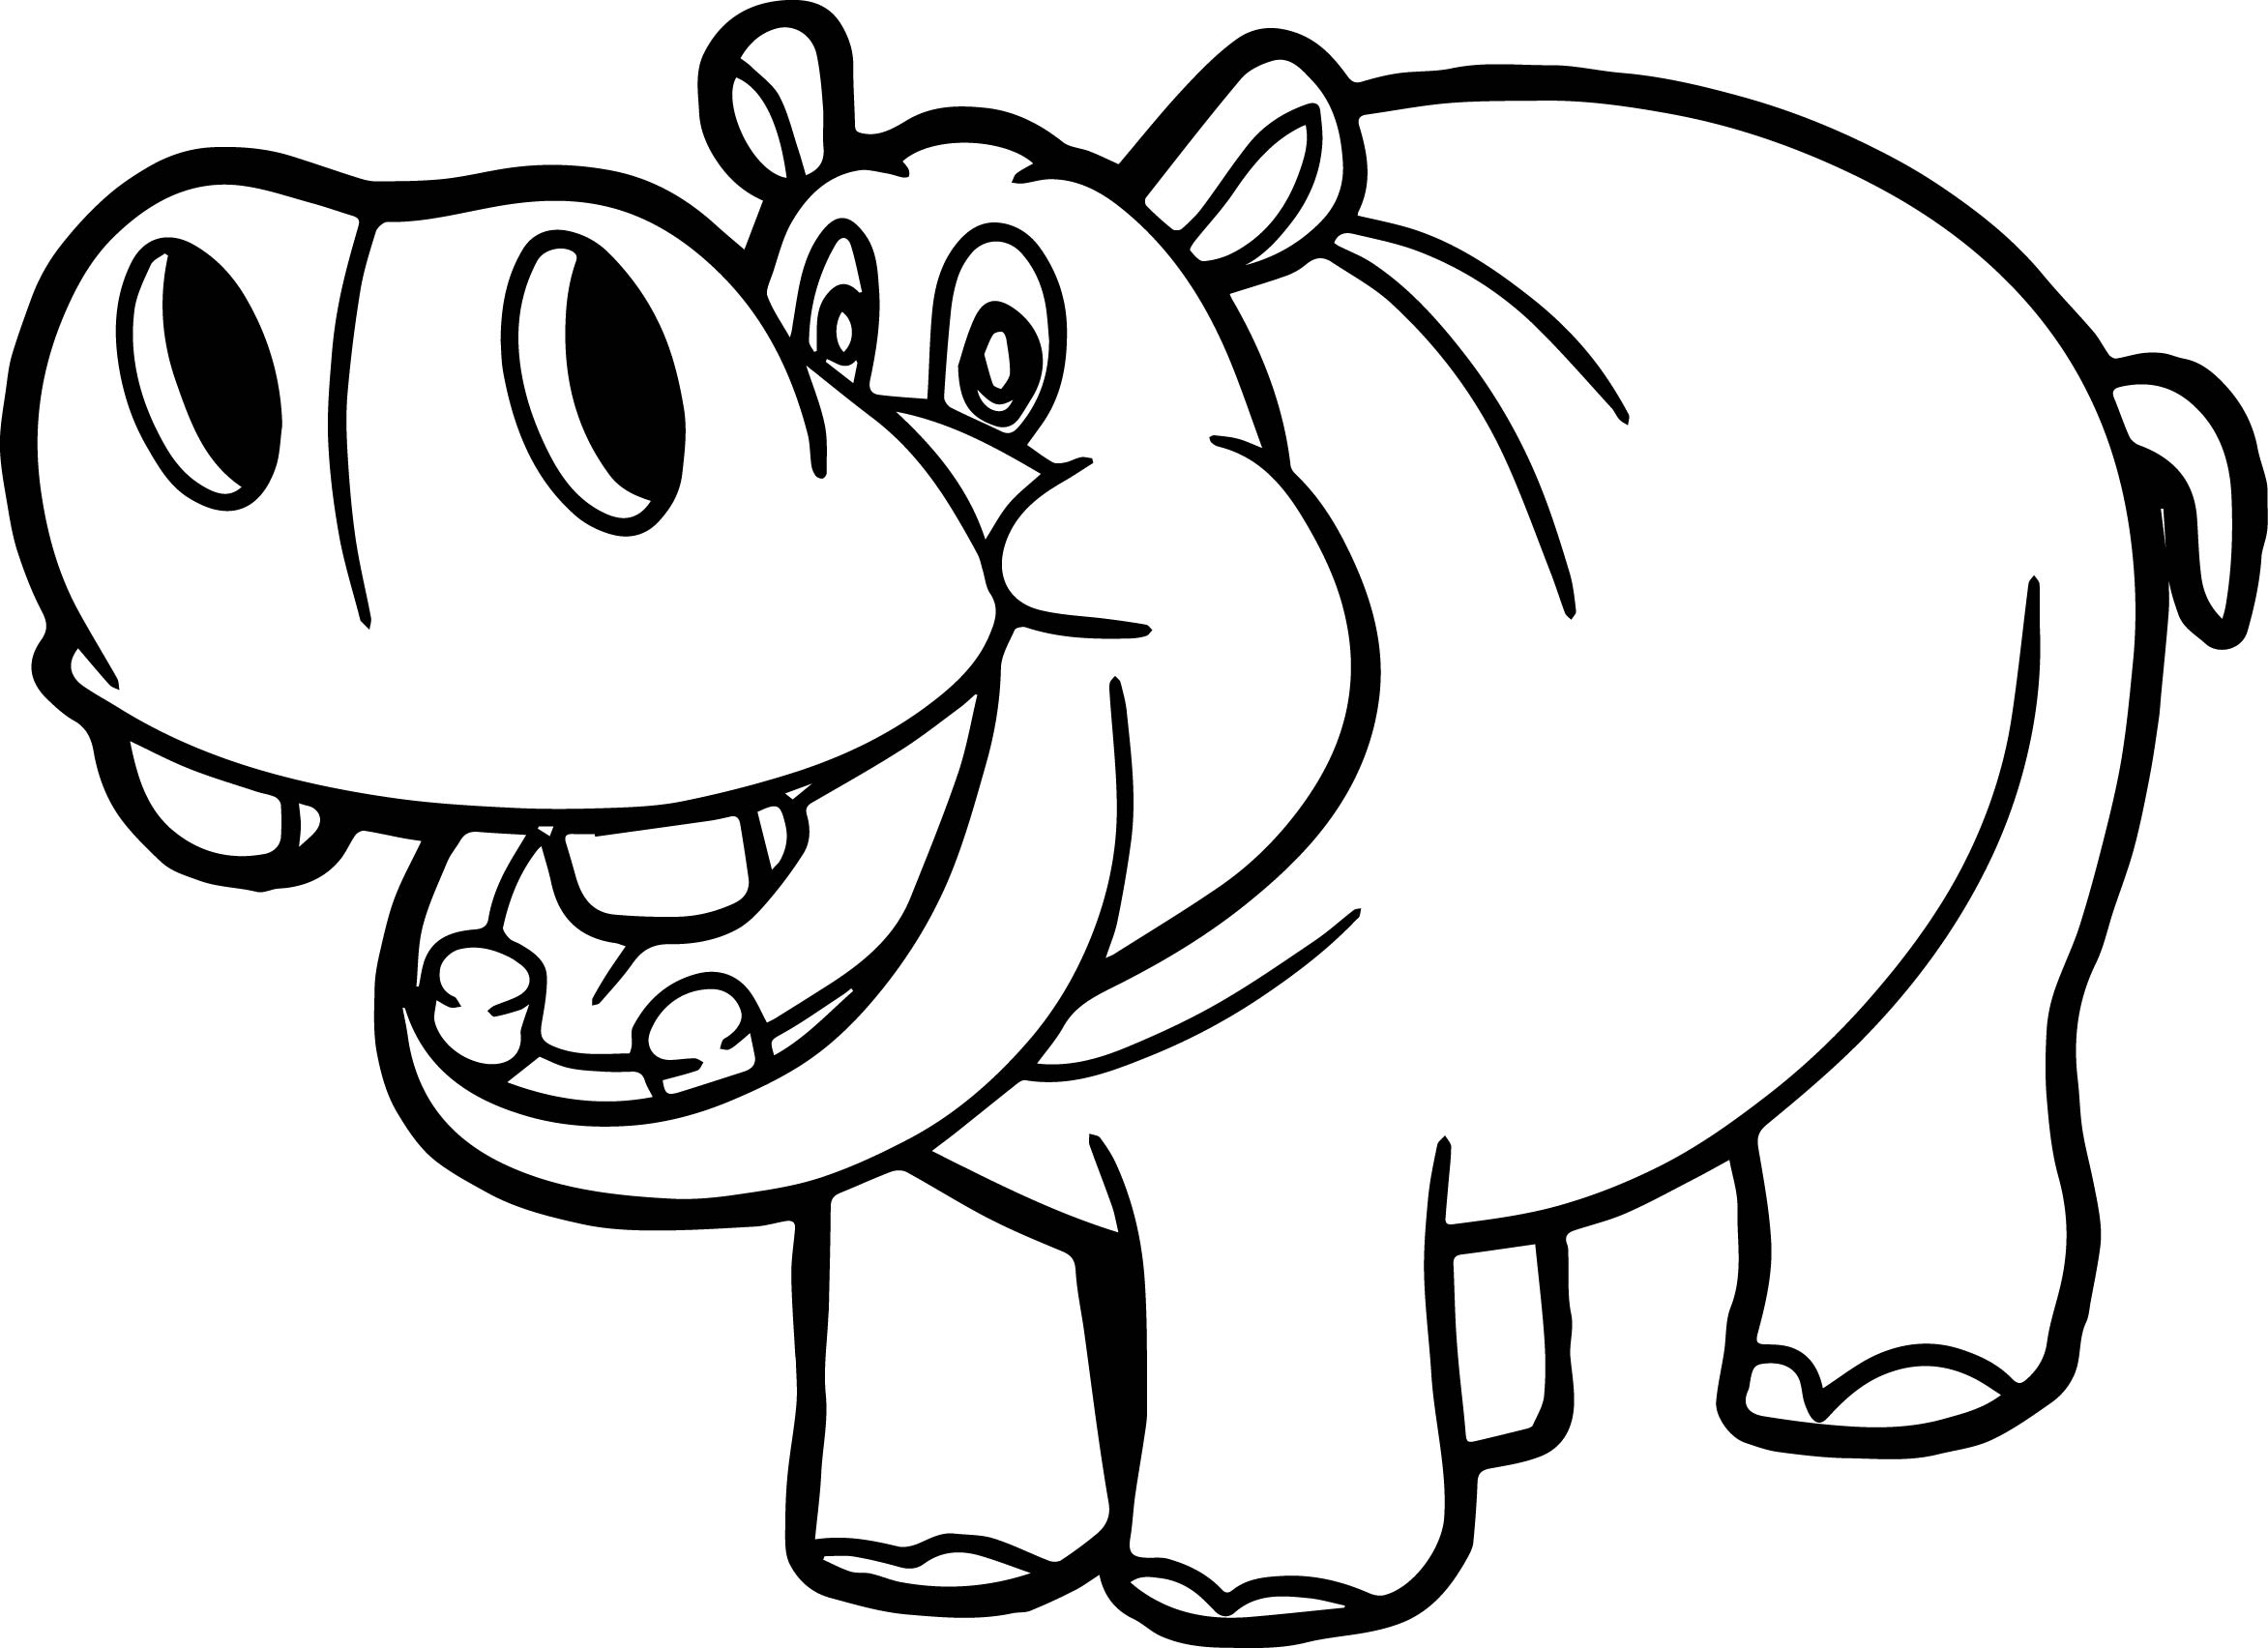 hippo coloring sheet printable hippo coloring pages for kids cool2bkids hippo sheet coloring